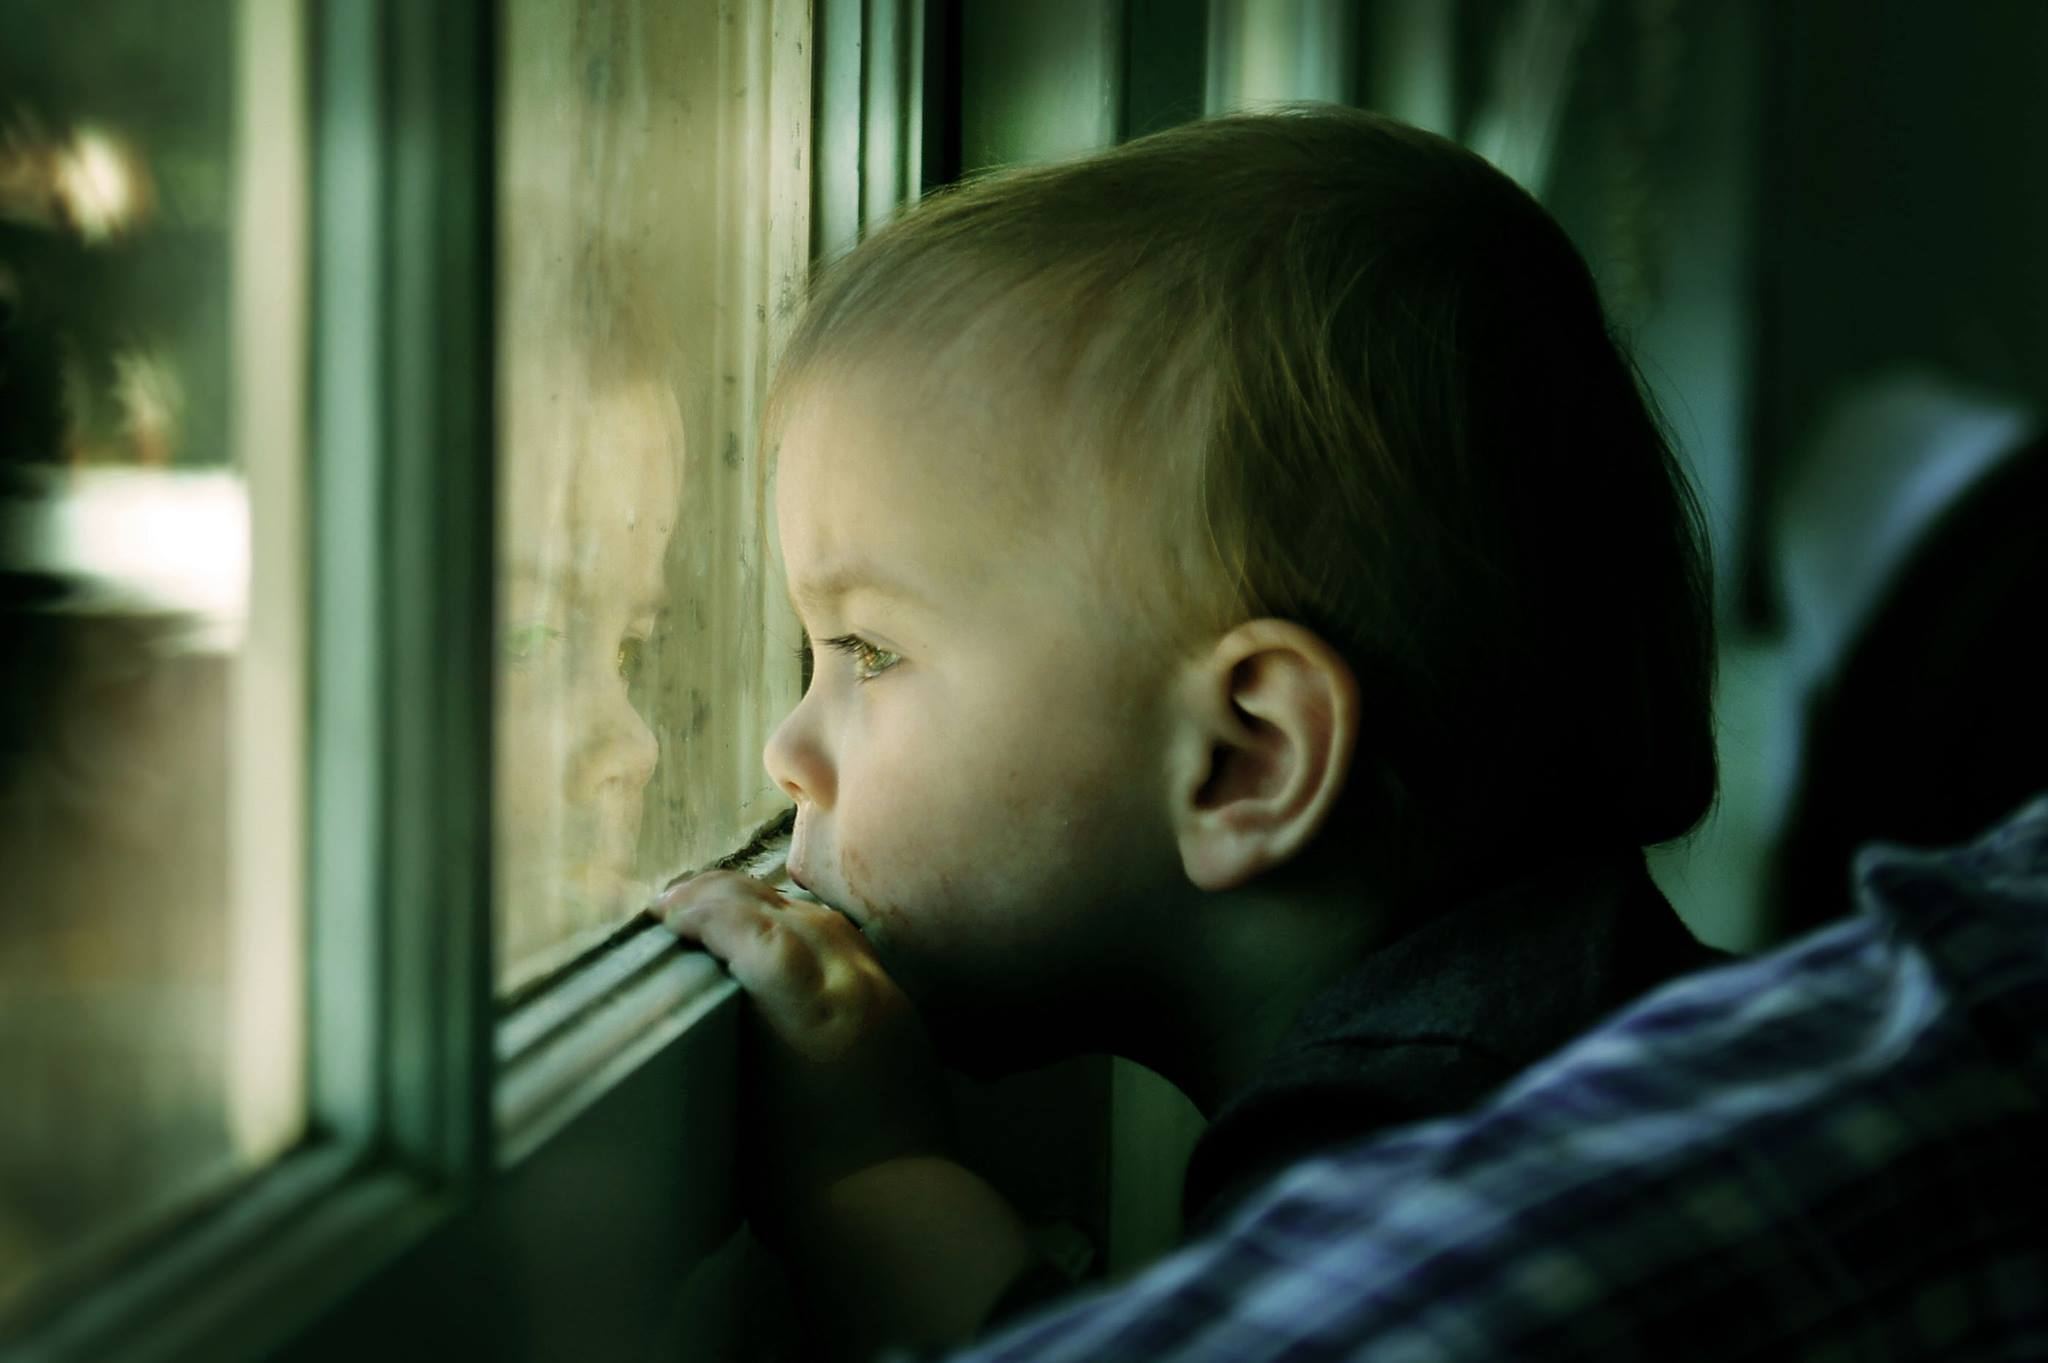 Child+at+window.jpg